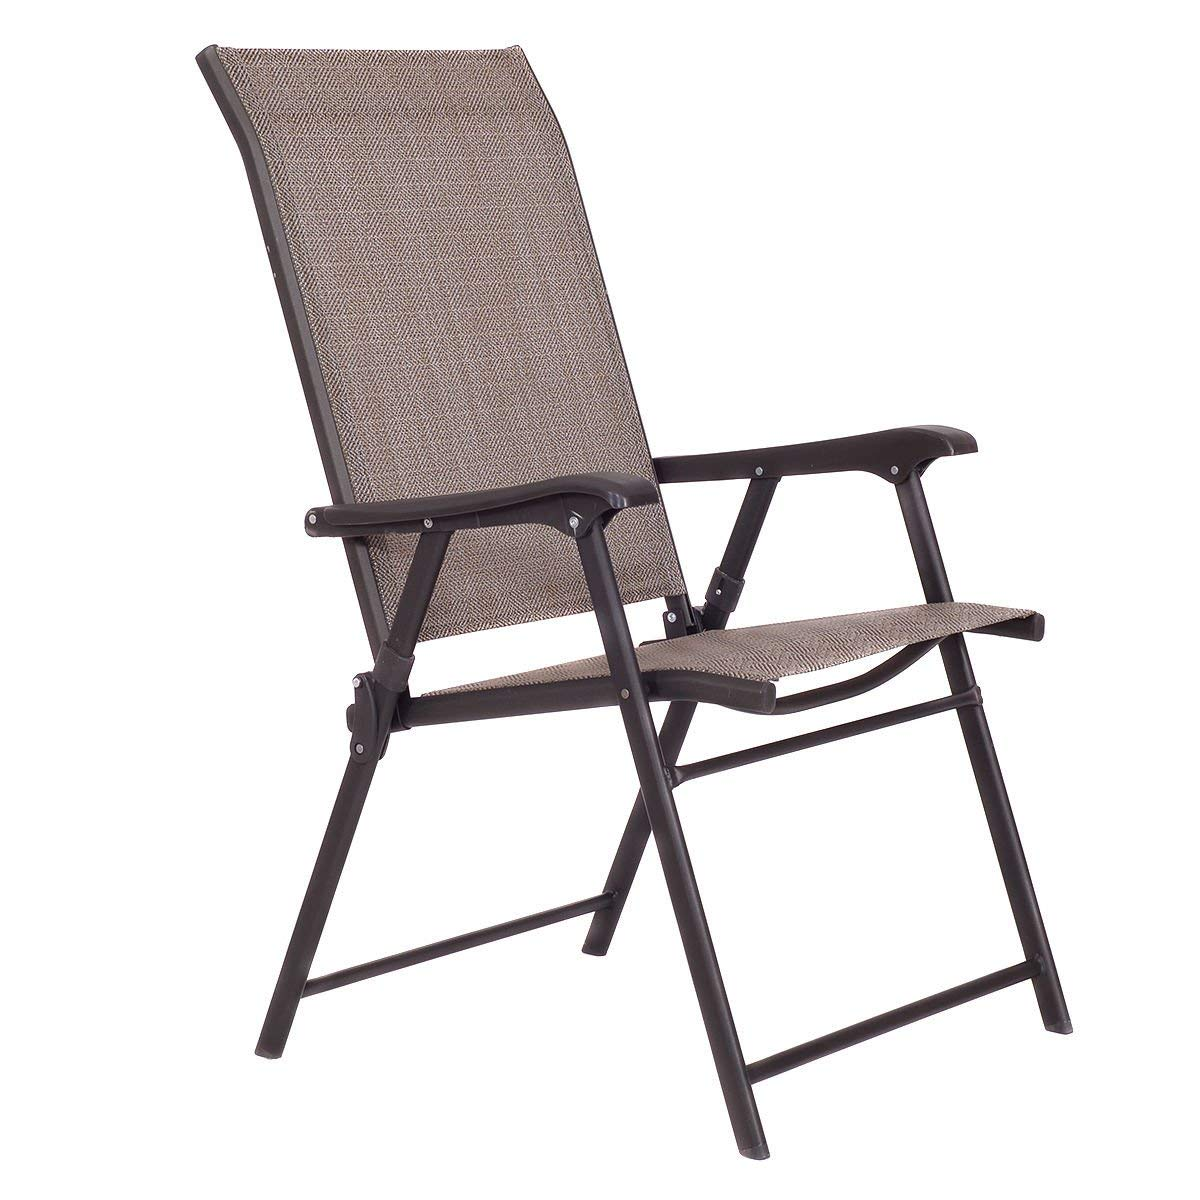 KCHEX>Set of 2 Patio Folding Sling Chairs Furniture Camping Deck Garden Pool Beach>This Folding Chair is Easy to Carry and Easily Folds up for Compact Storage.